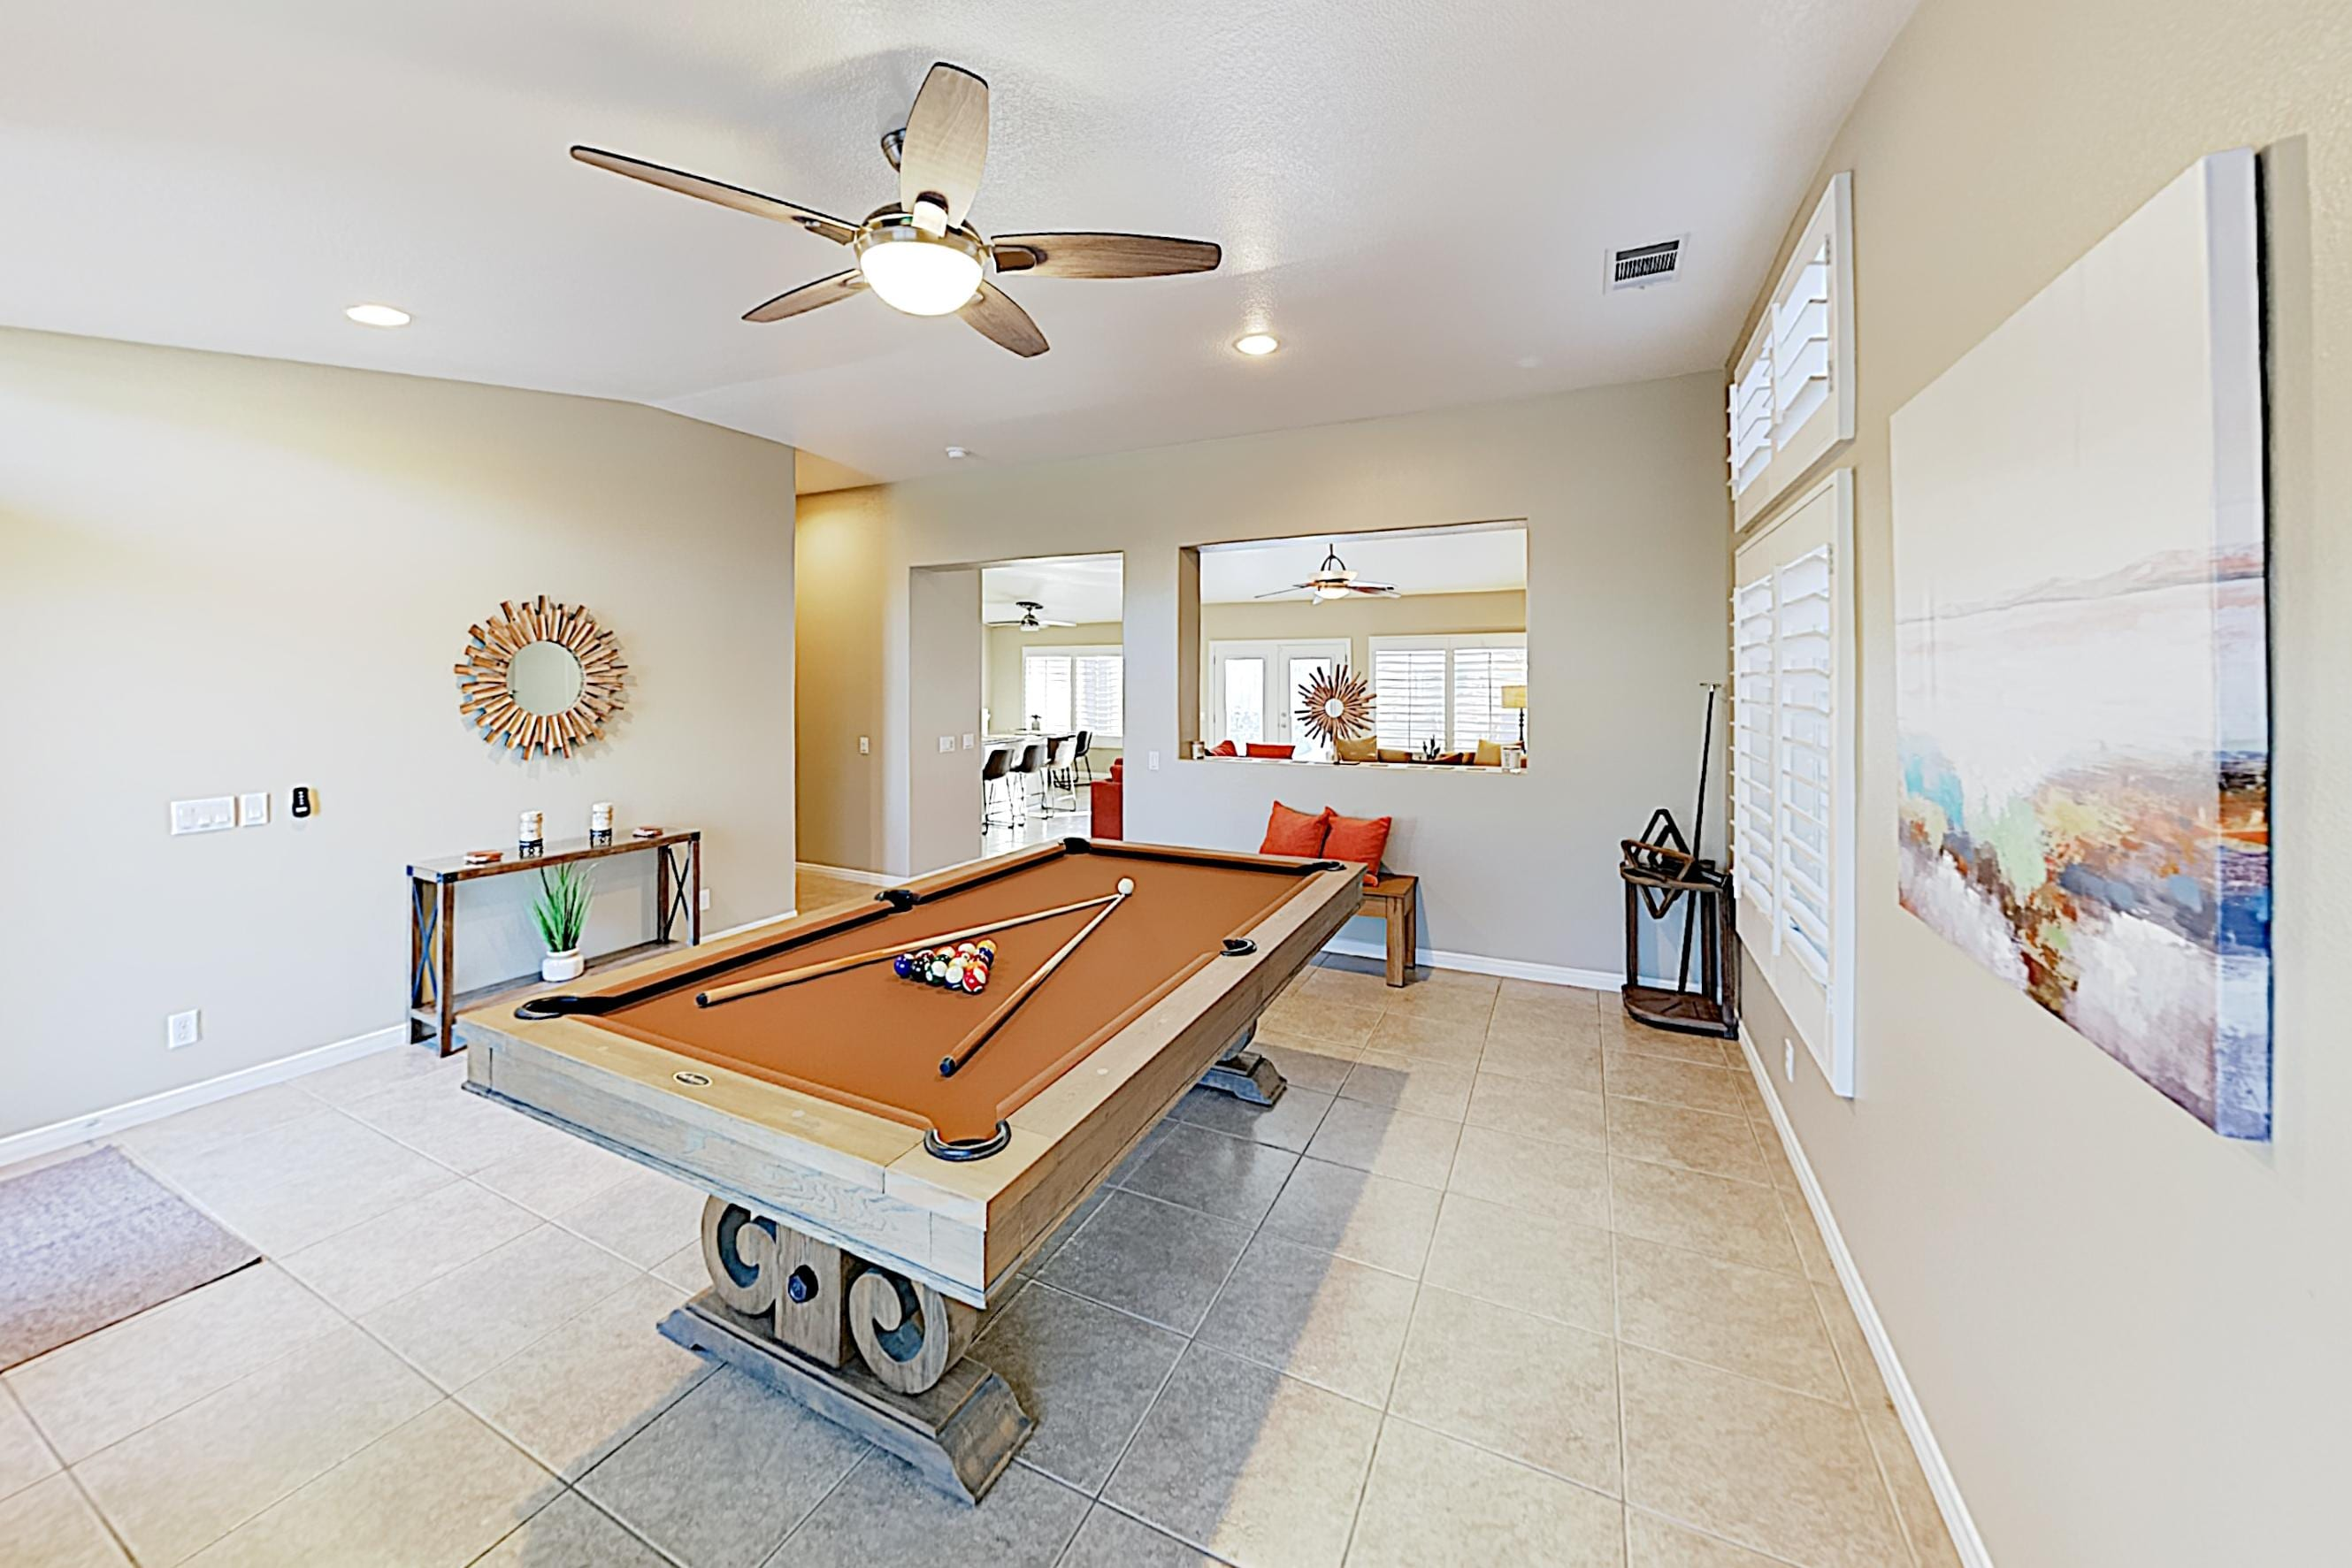 Rack up a full-size pool table in the stylish game room.